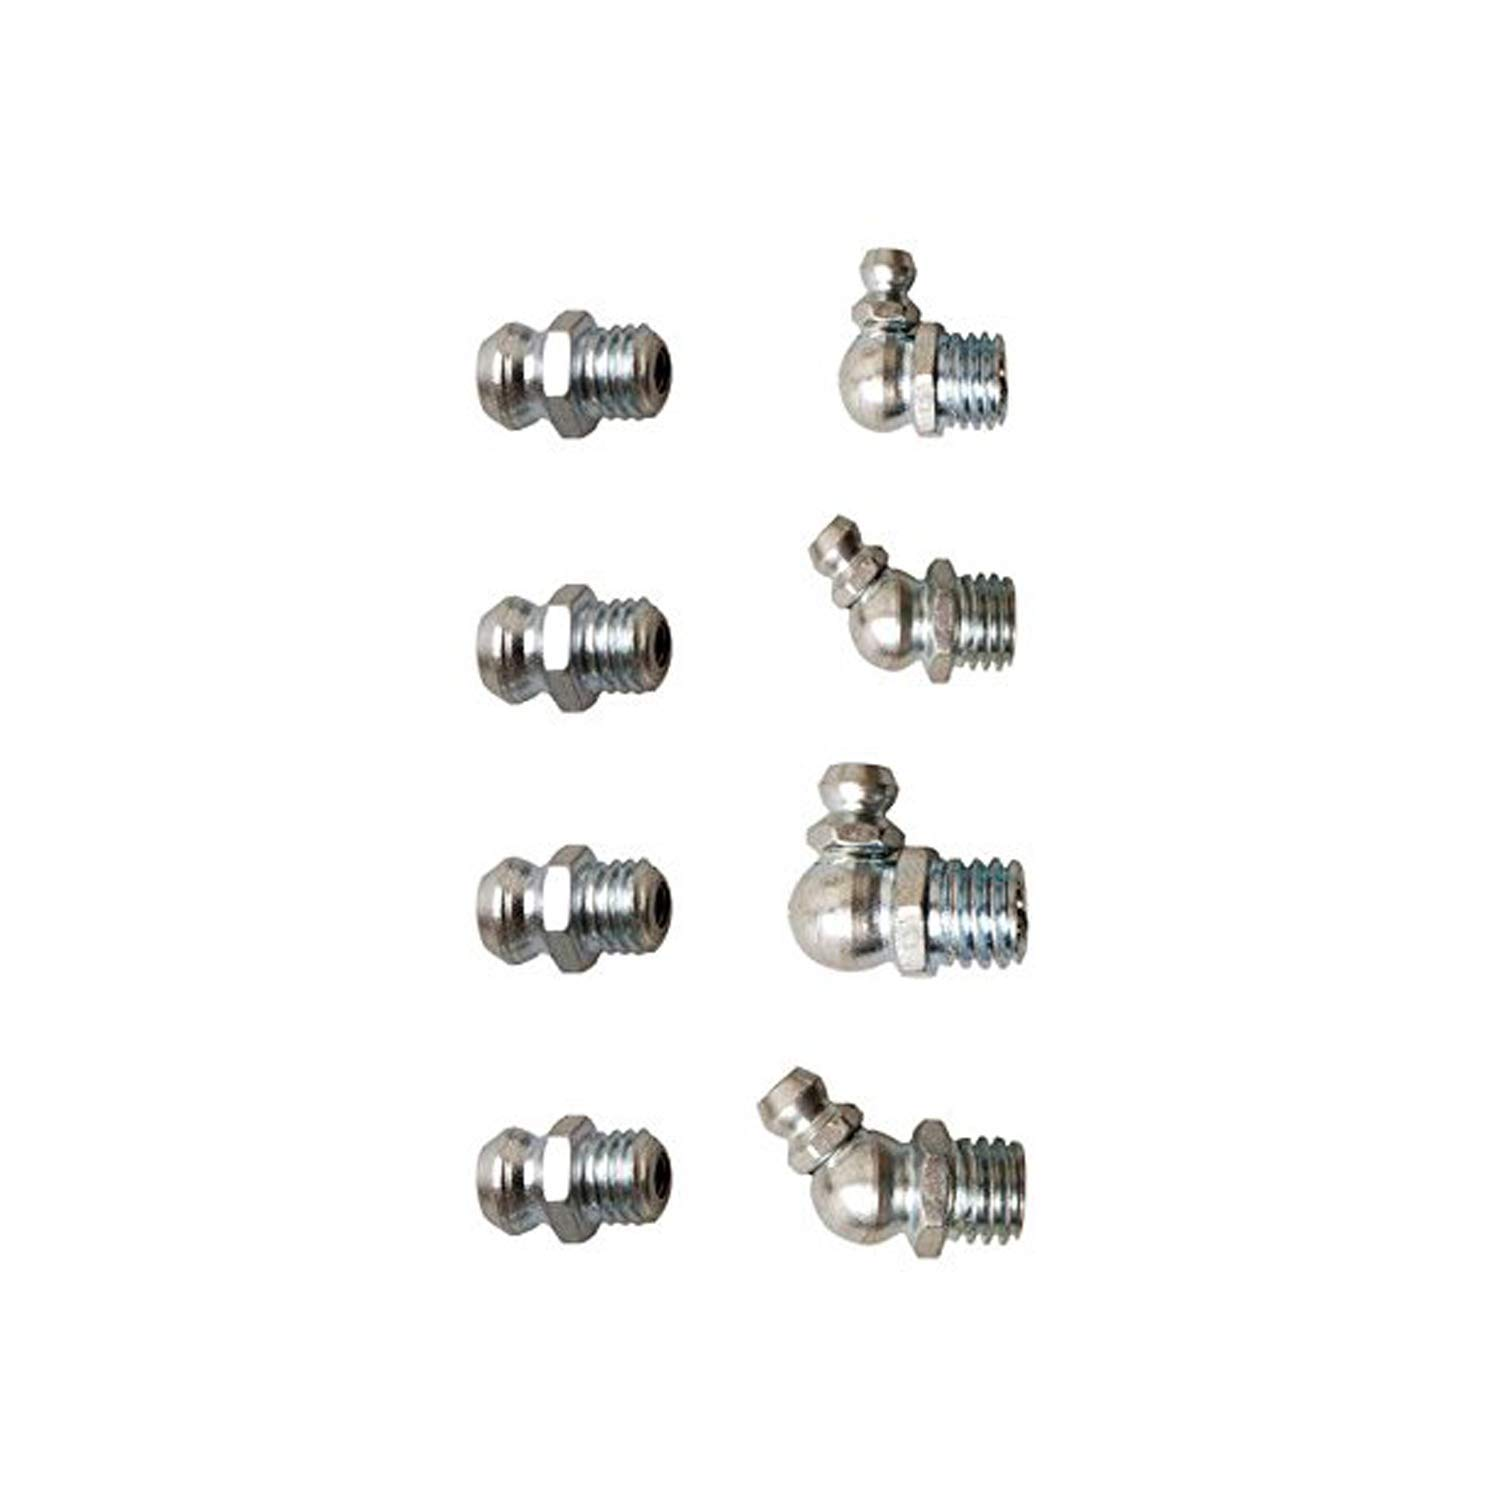 Wohlstand Grease Nipple Assortment Metric Grease Nipple Assortment Set Fittings,110pc Assorted Hydraulic Brake Metric Grease Nipple Assortment Set Fittings